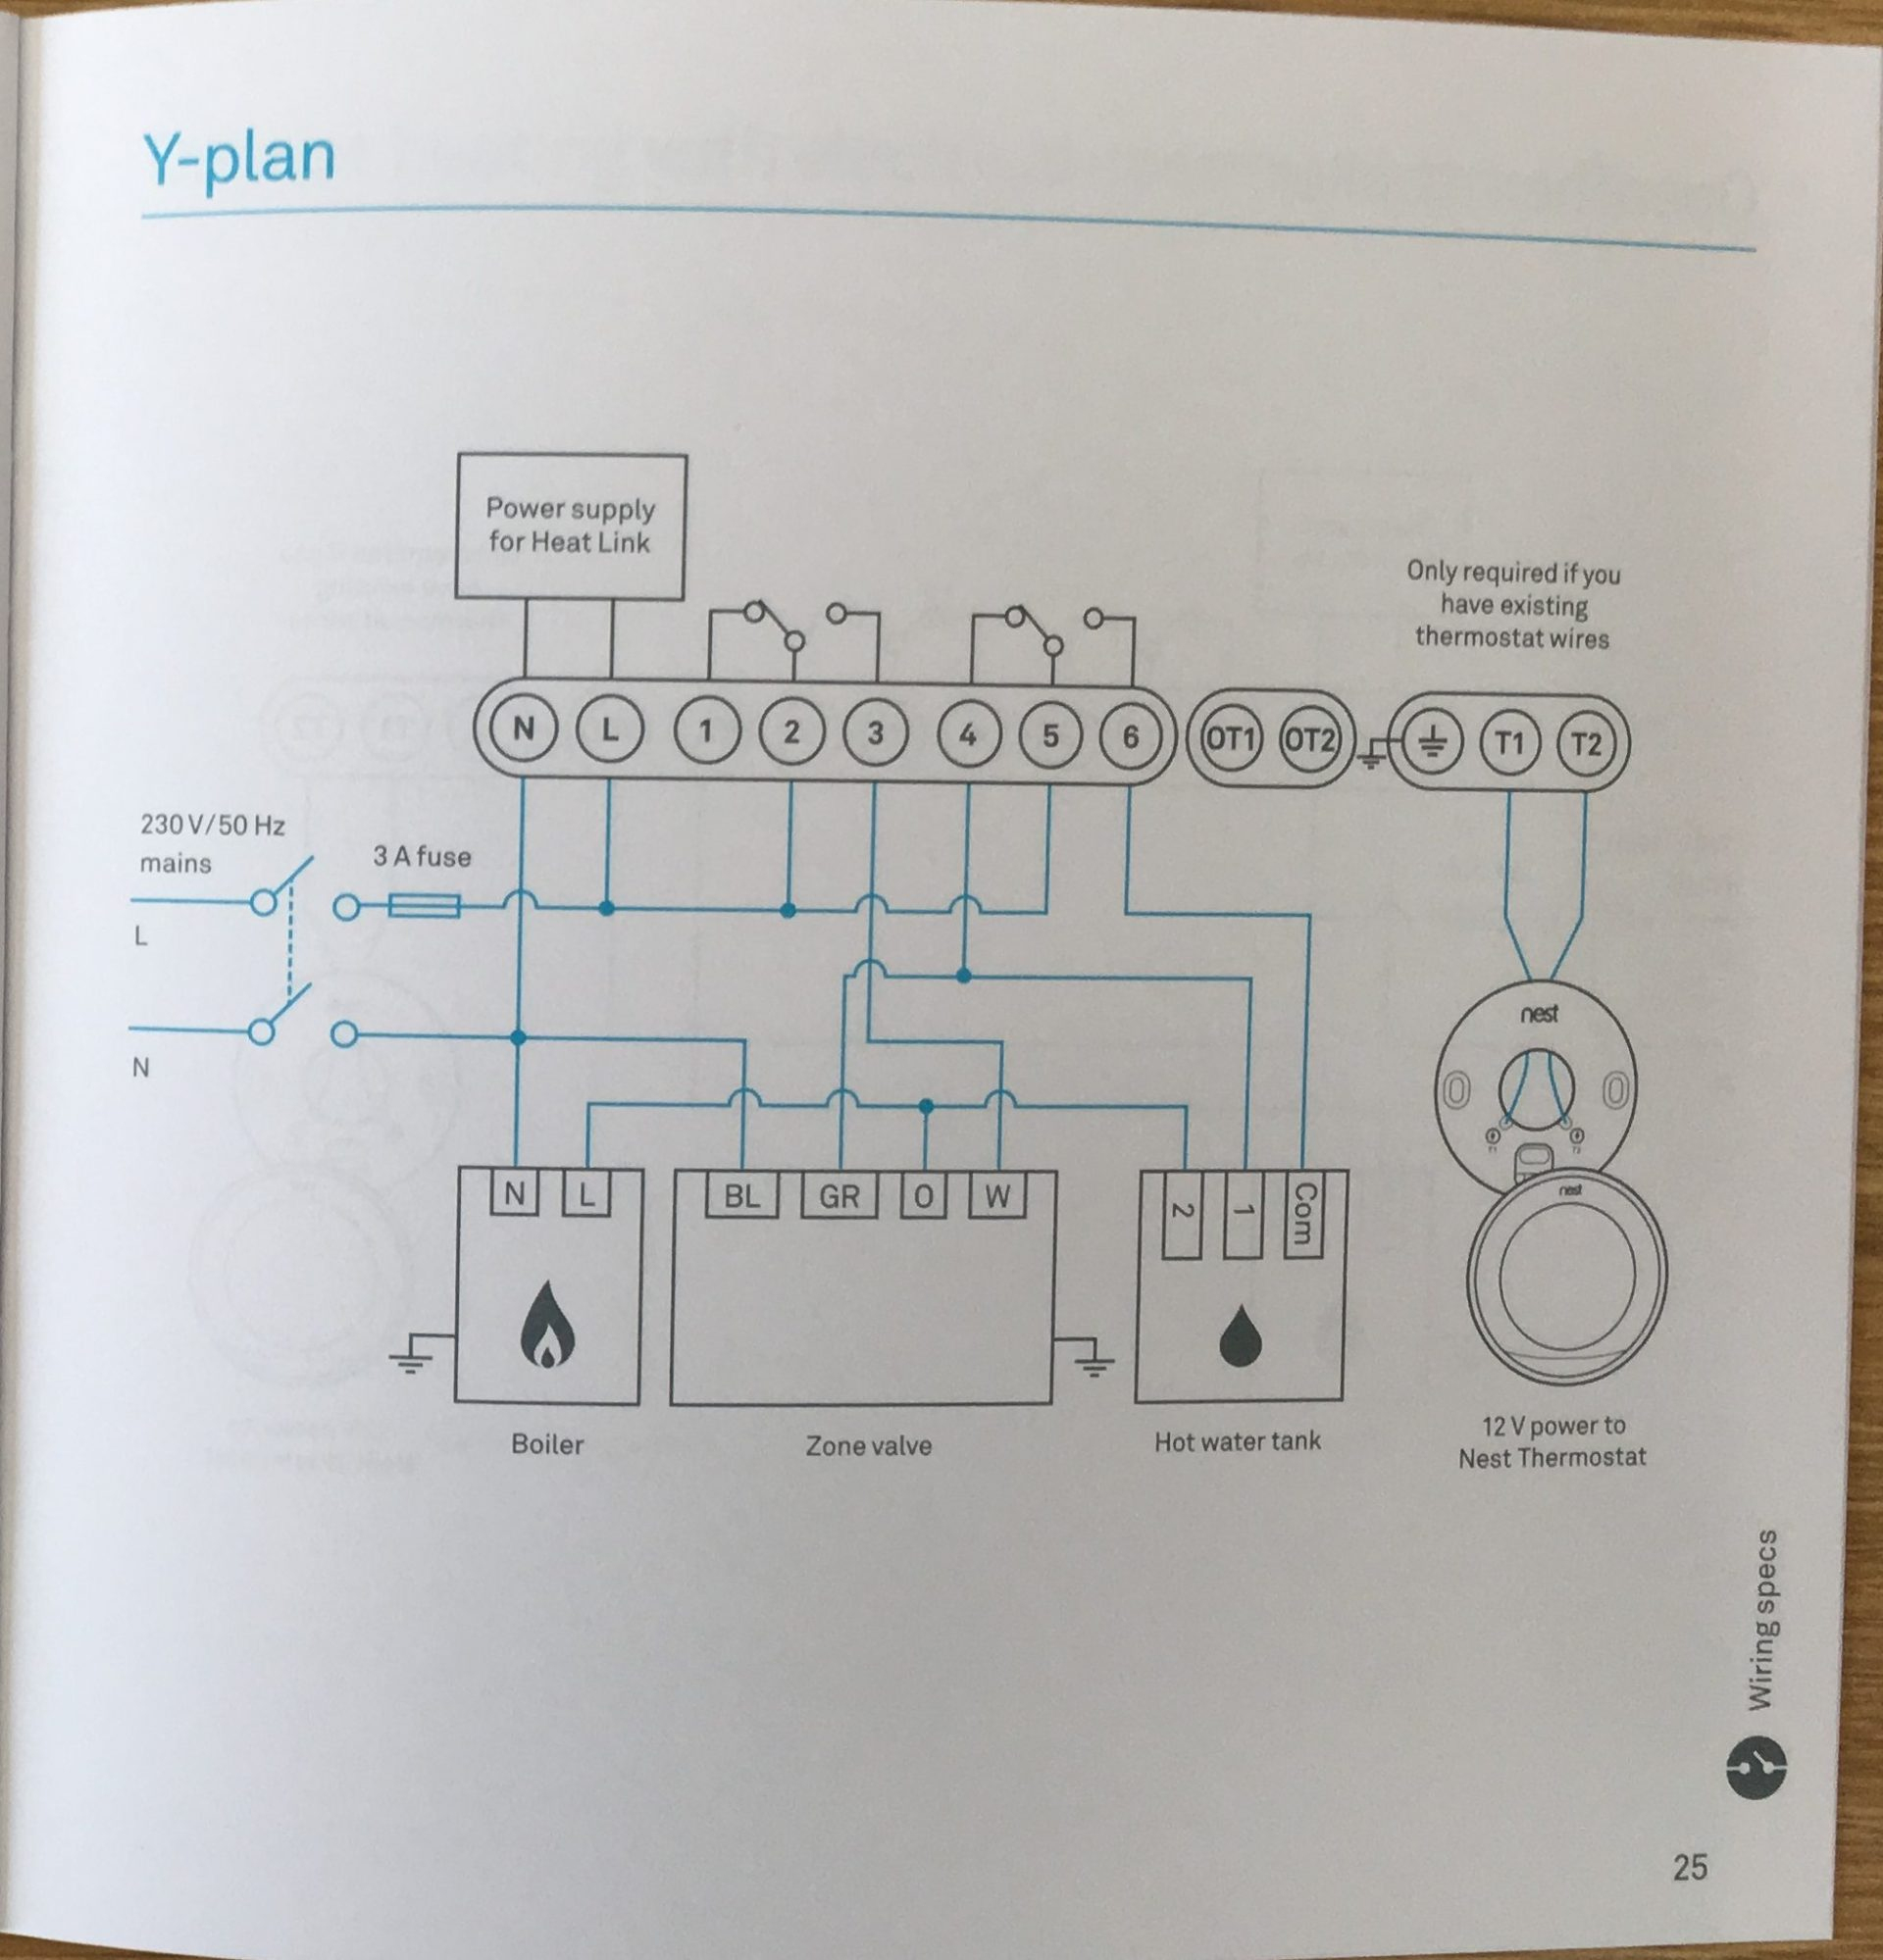 How To Install The Nest Learning Thermostat (3Rd Gen) In A Y-Plan - Nest Wiring Diagram 3 Port Valve